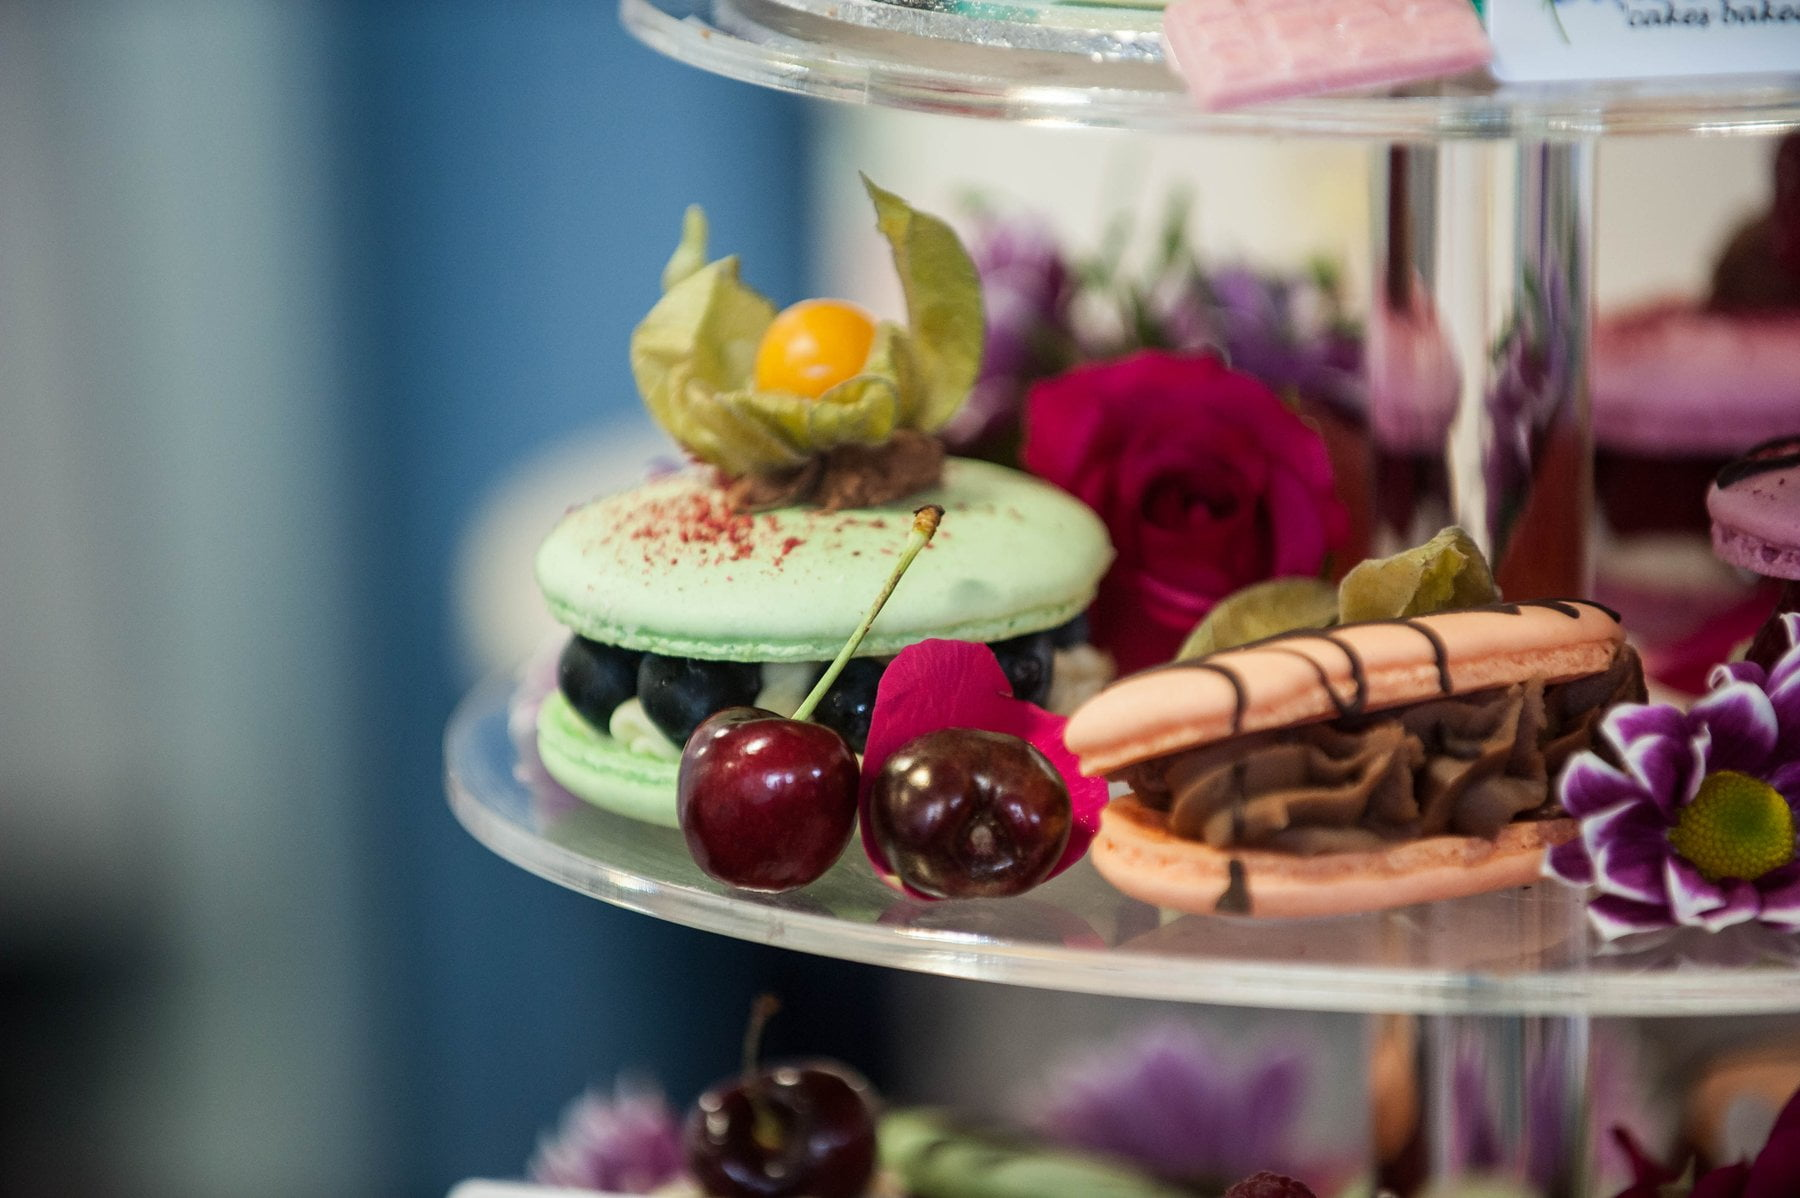 Learn to make giant macarons filled with ganache at our cake classes in Maidstone, Kent